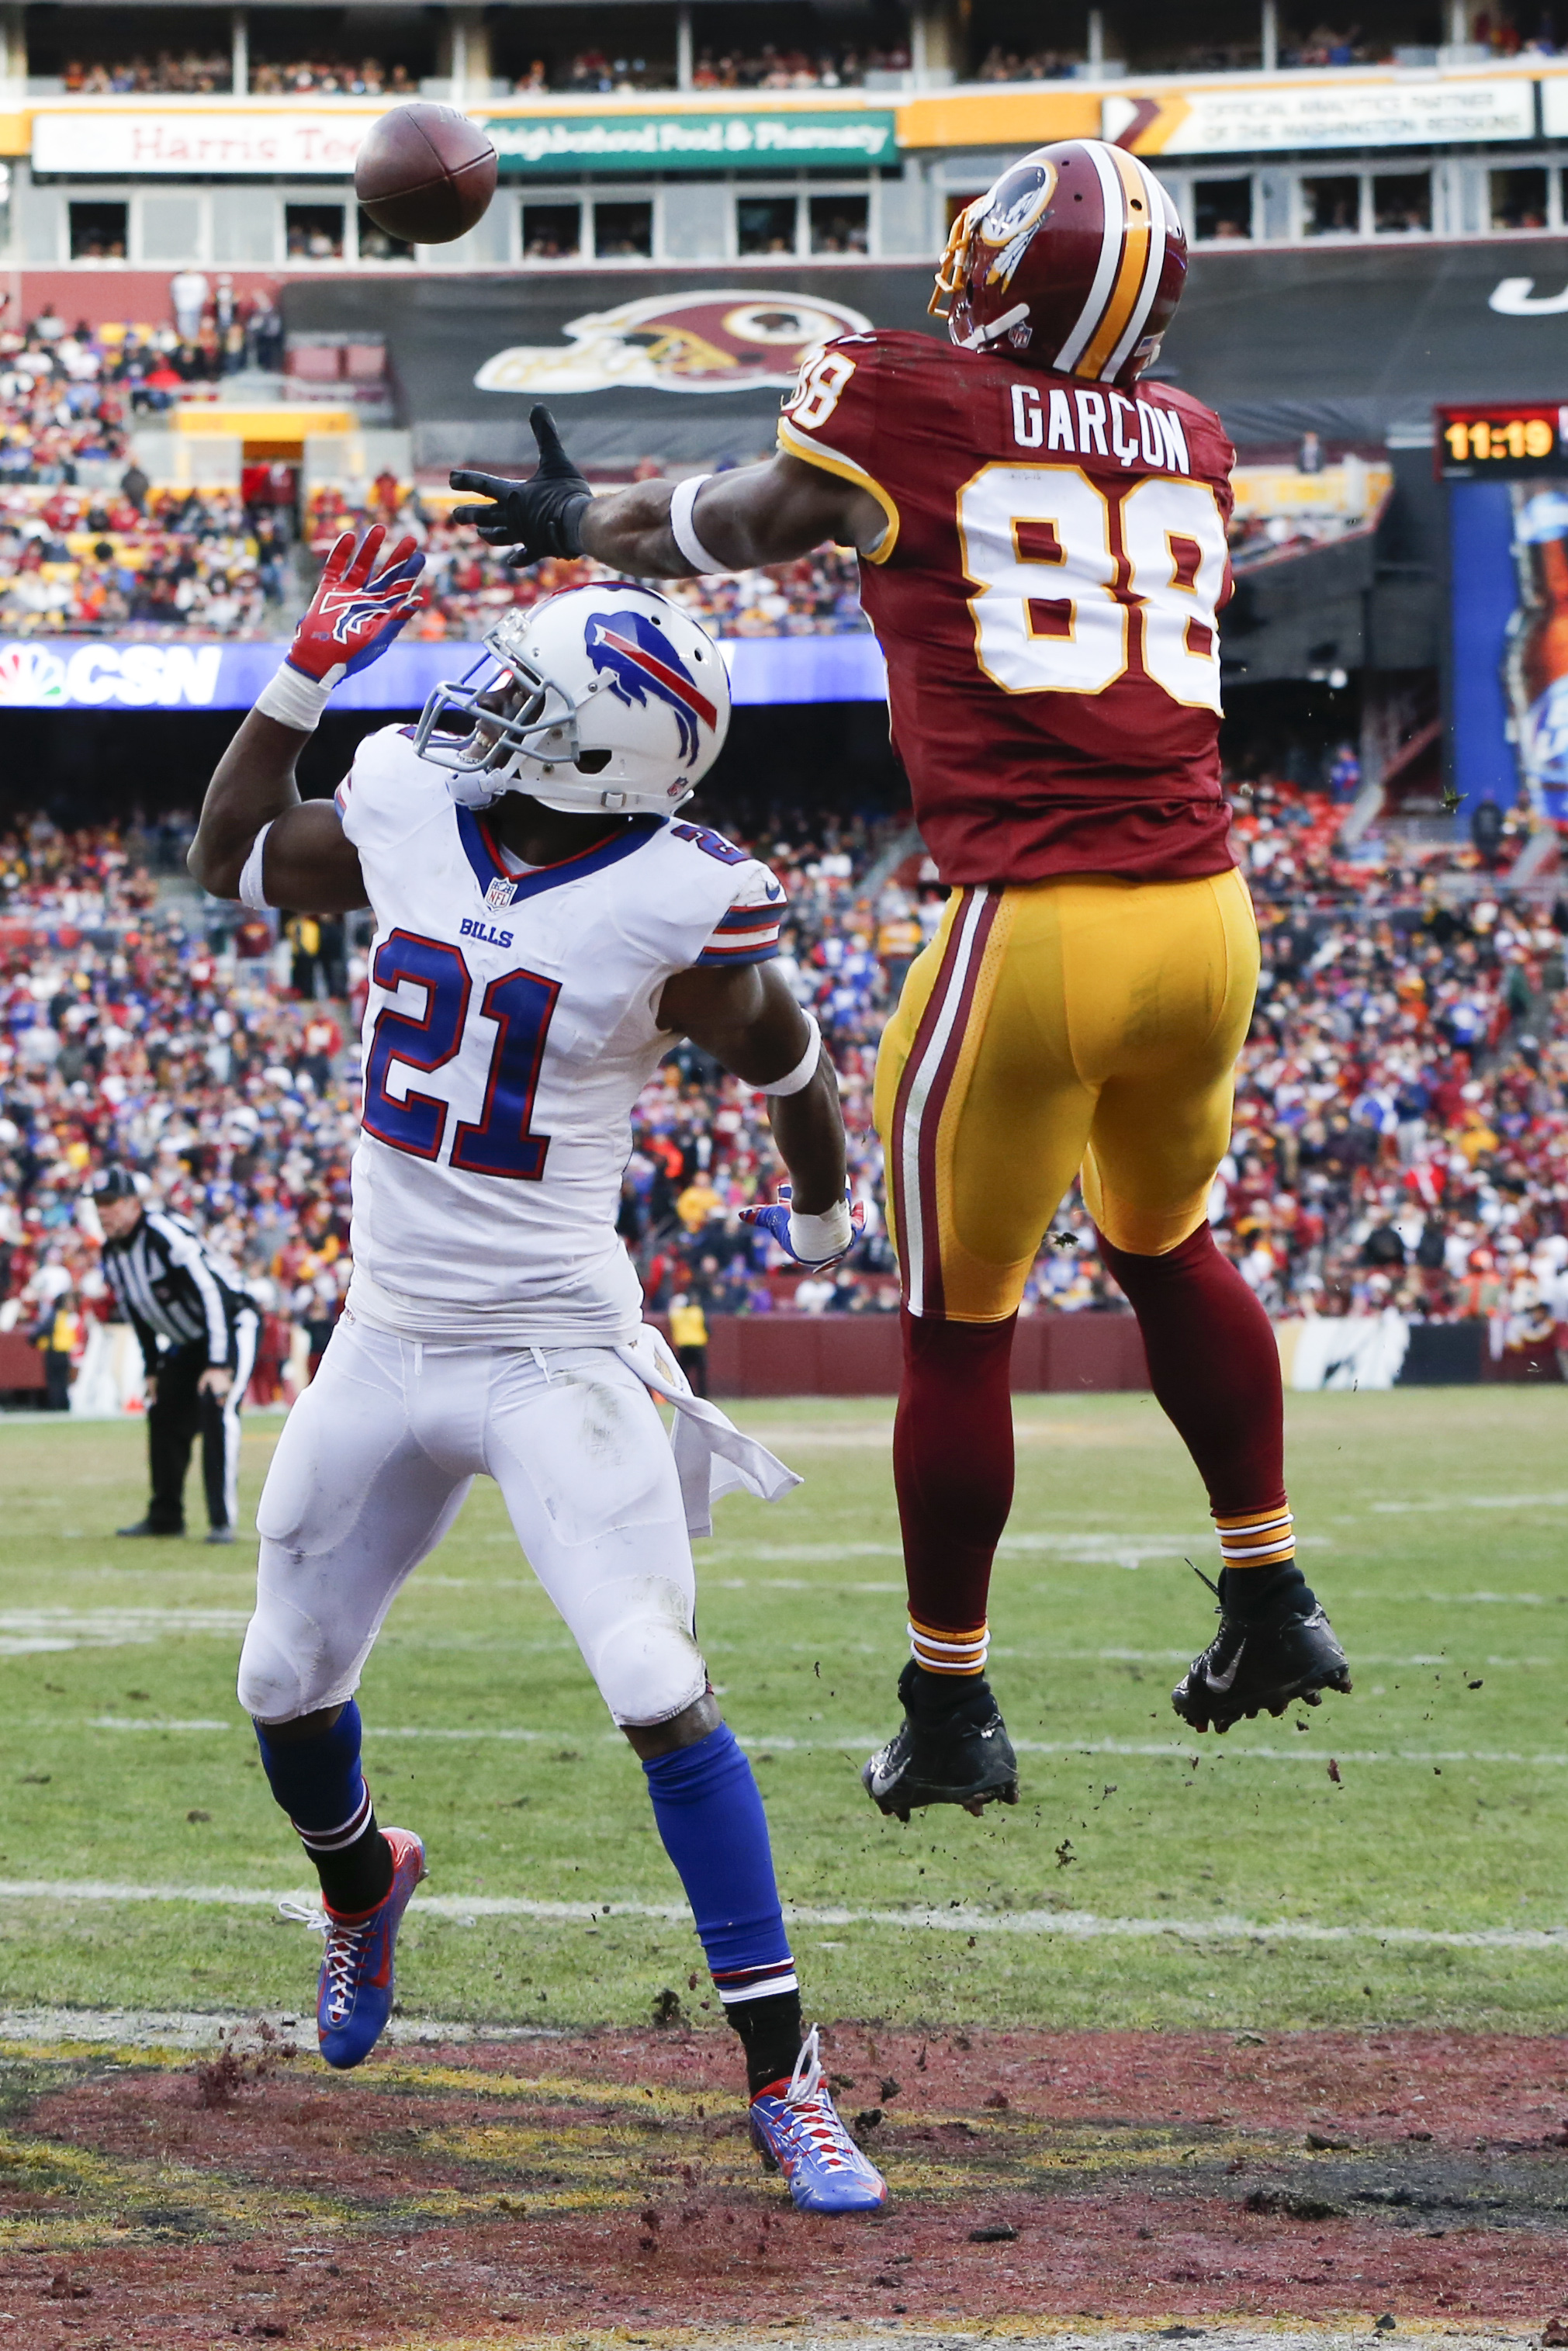 Washington Redskins wide receiver Pierre Garcon (88) pulls in a touchdown pass over Buffalo Bills strong safety Leodis McKelvin (21) during the second half of an NFL football game in Landover, Md., Sunday, Dec. 20, 2015. (AP Photo/Jacquelyn Martin)